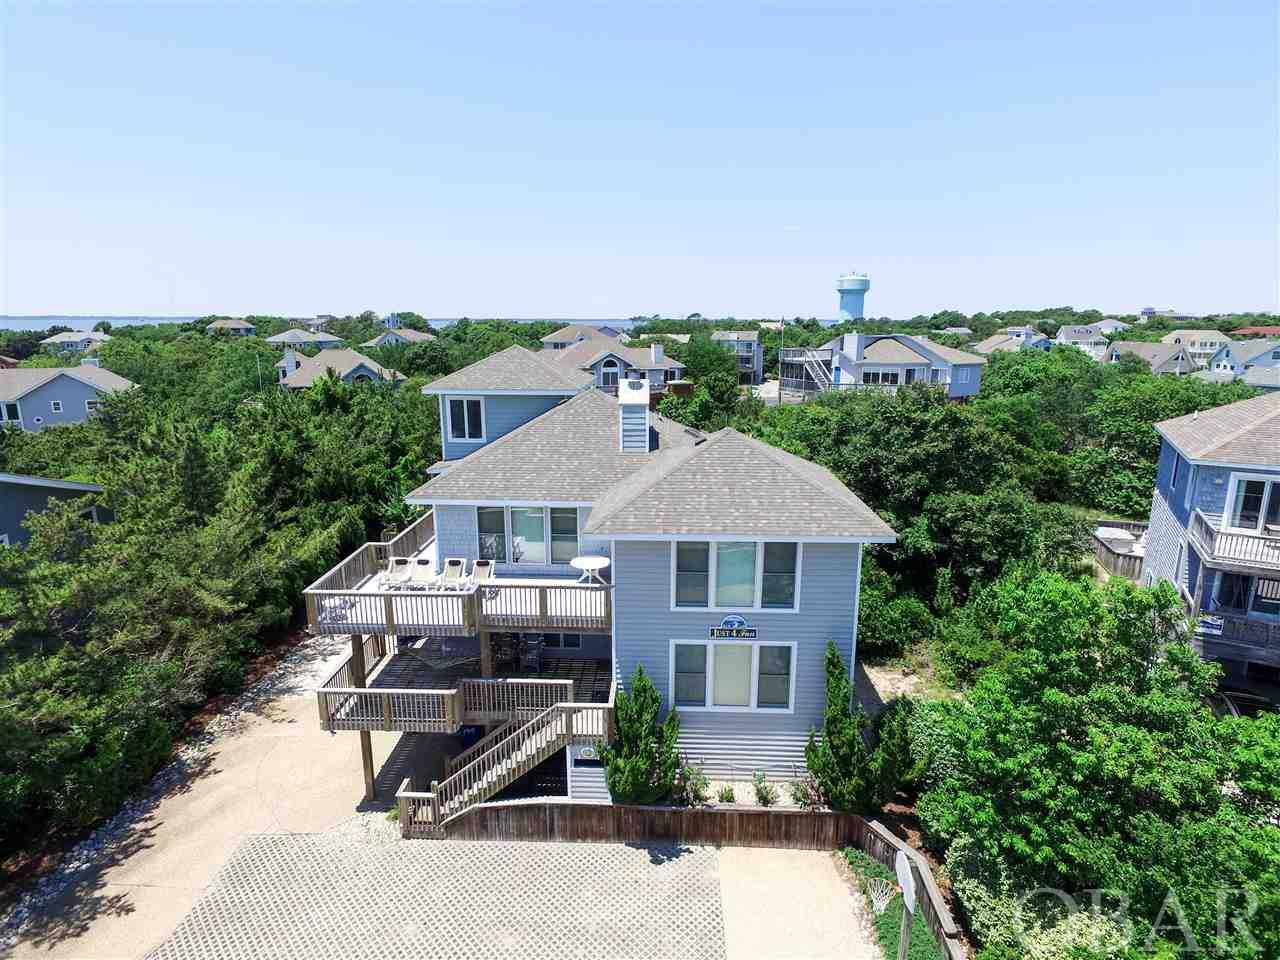 199 Schooner Ridge Drive,Duck,NC 27949,5 Bedrooms Bedrooms,4 BathroomsBathrooms,Residential,Schooner Ridge Drive,92542